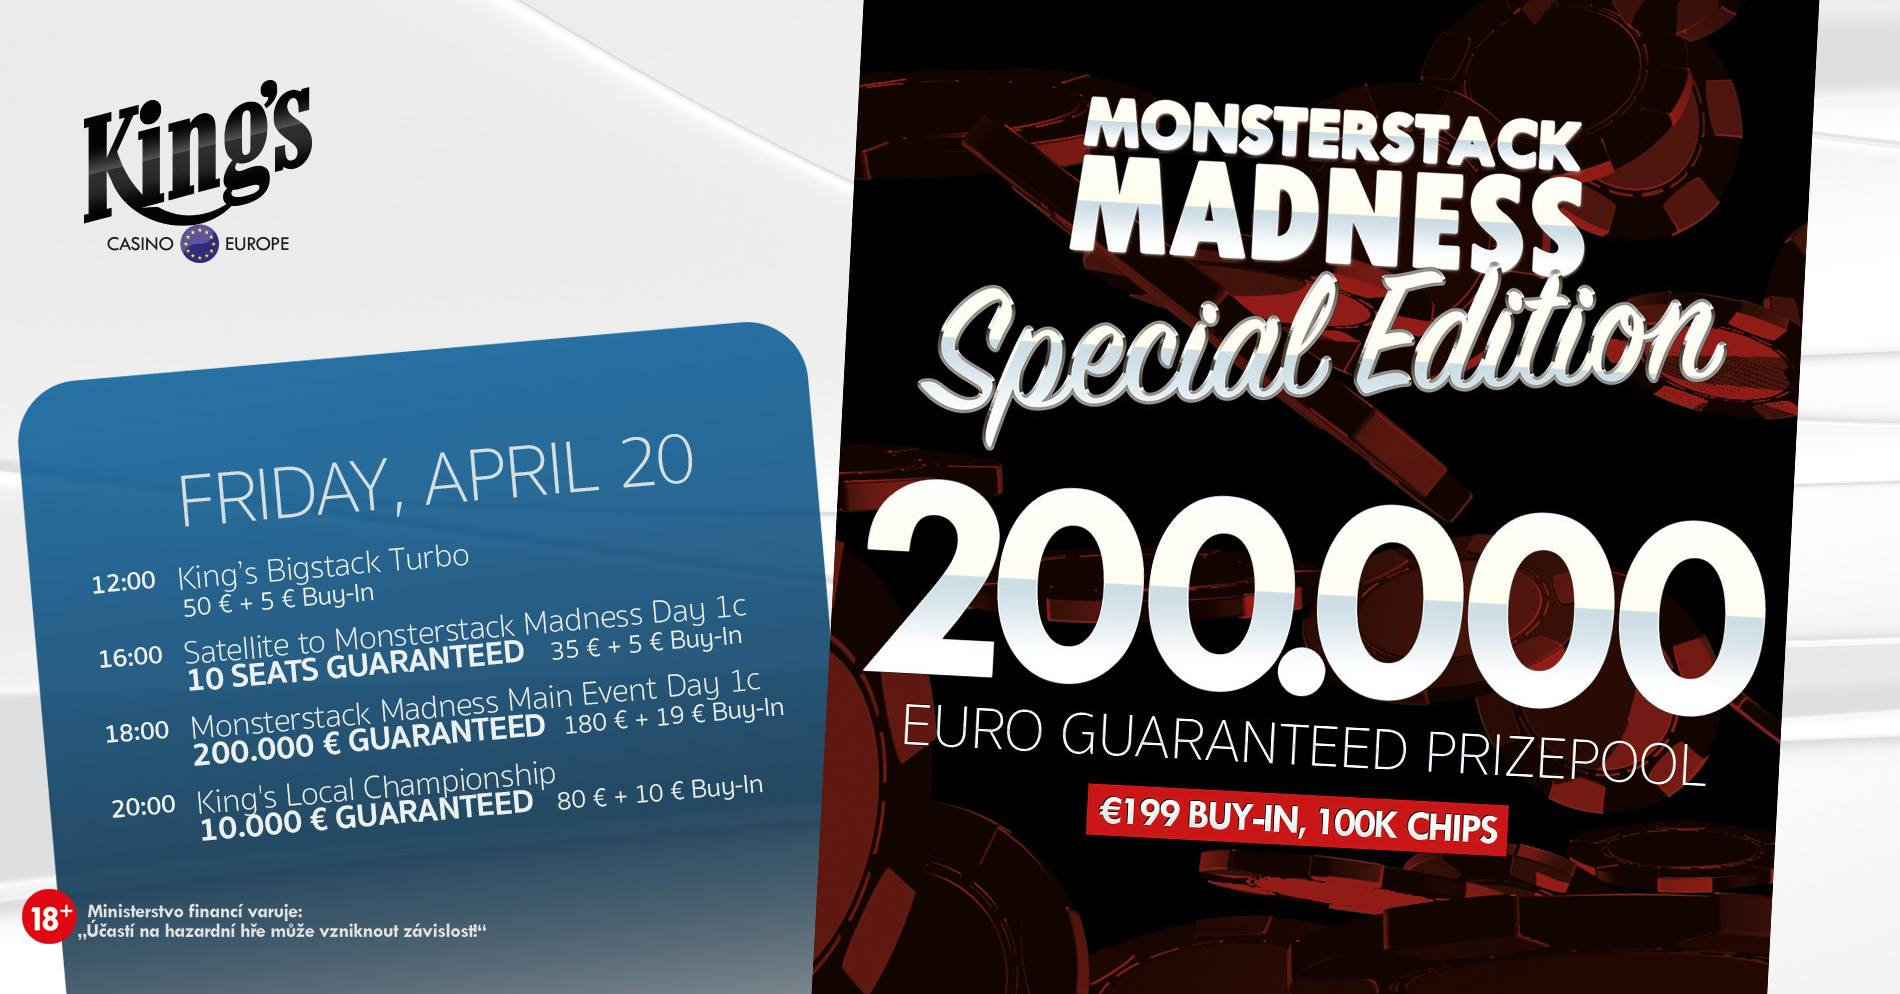 MonsterStackMadness_Freitag20April